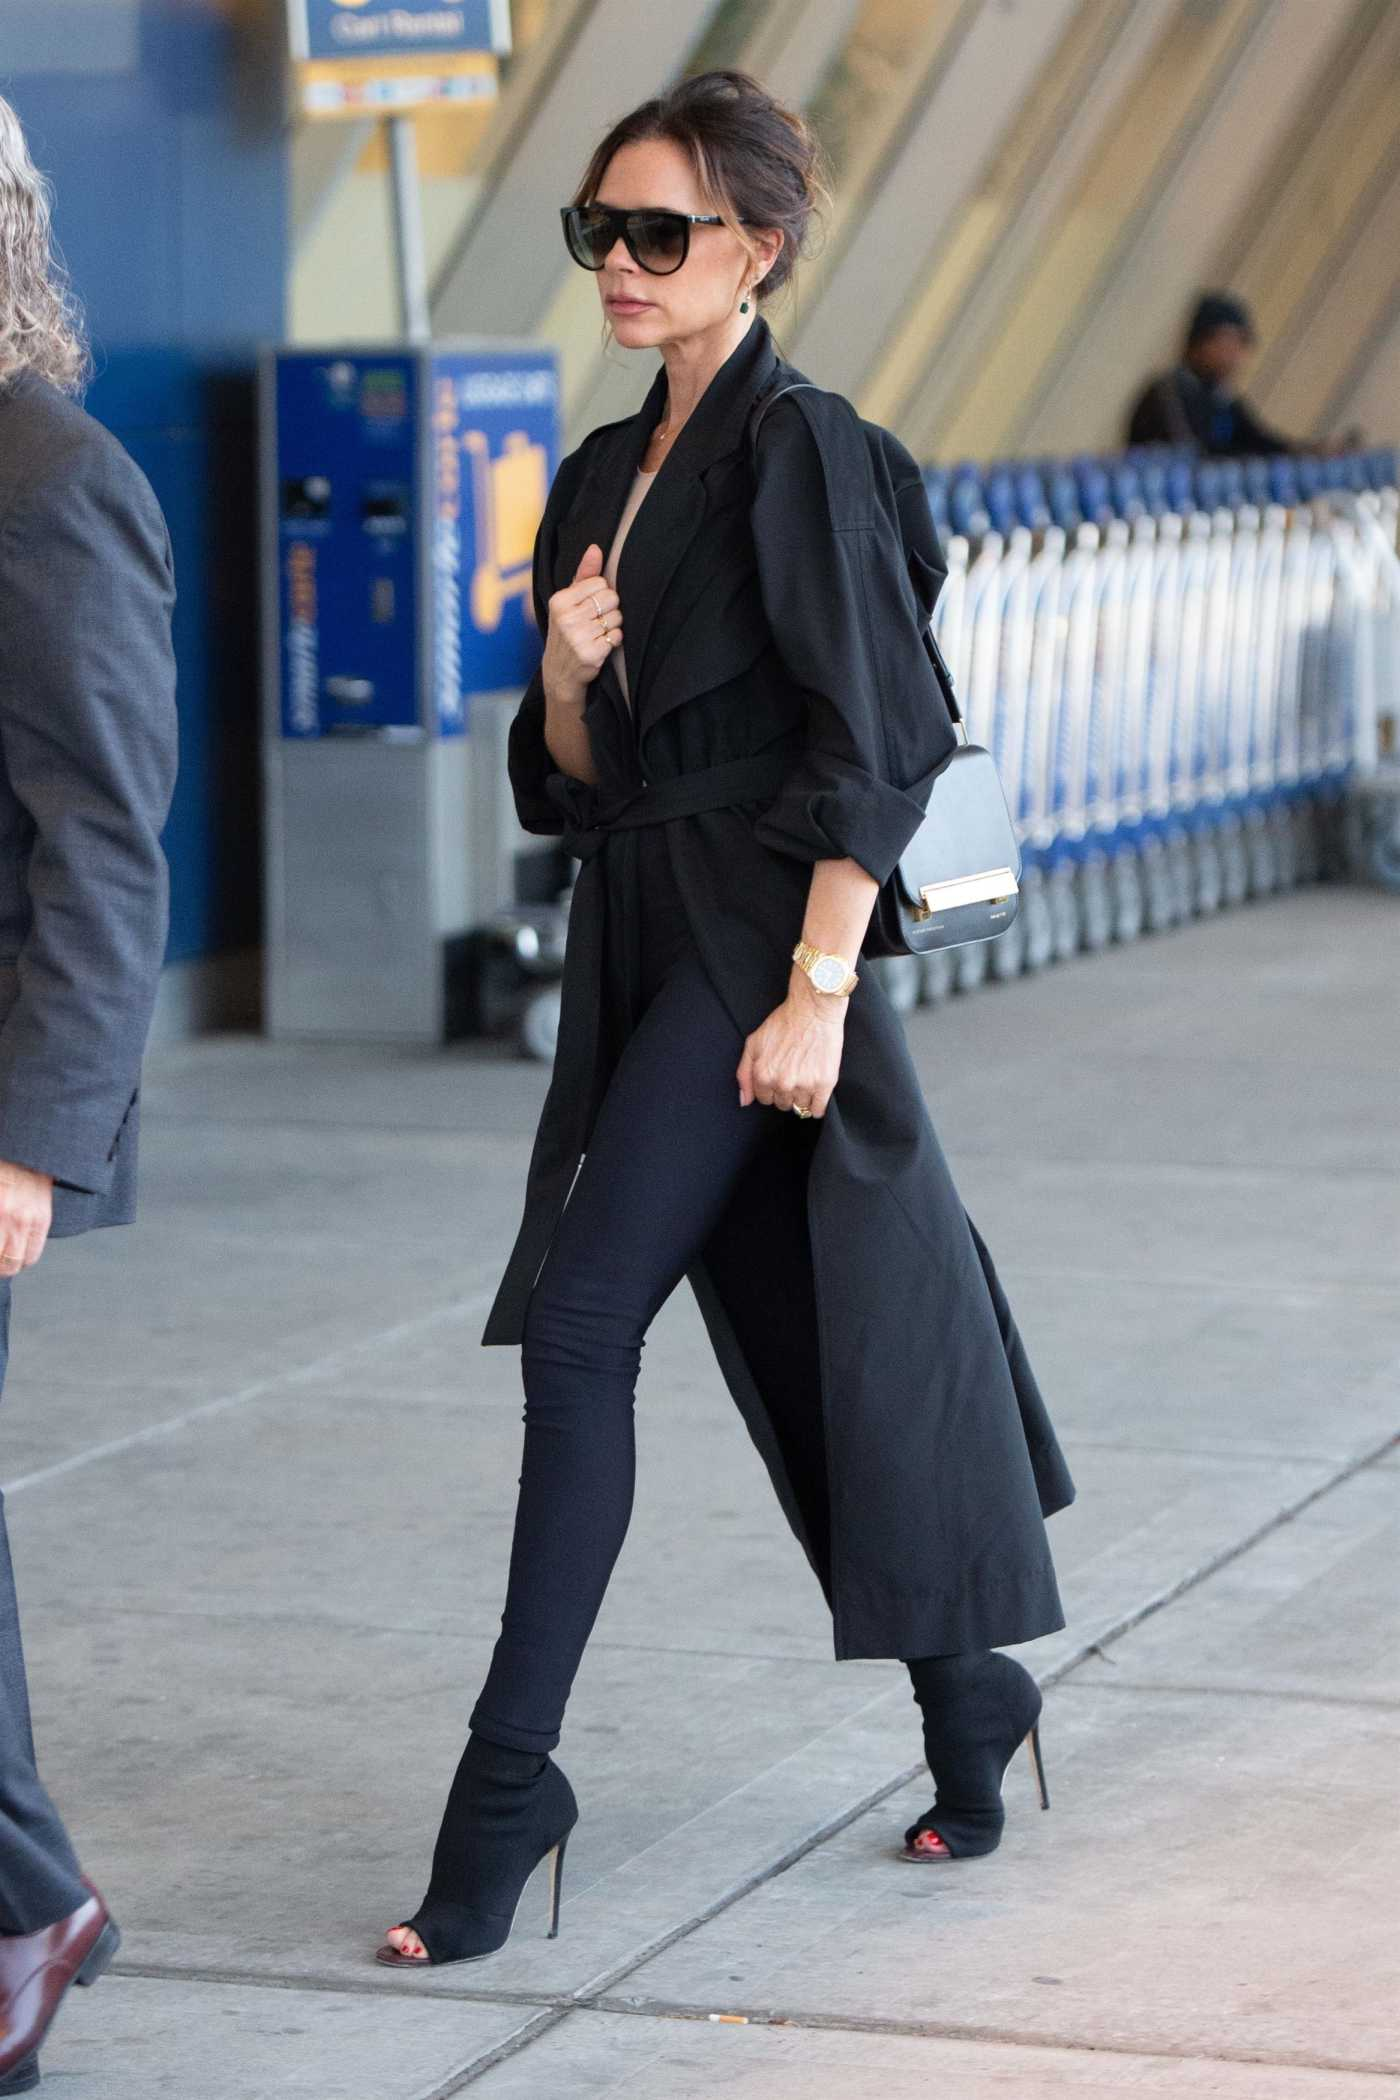 Victoria Beckham in a Black Trench Coat Arrives at JFK Airport in NYC 05/11/2019